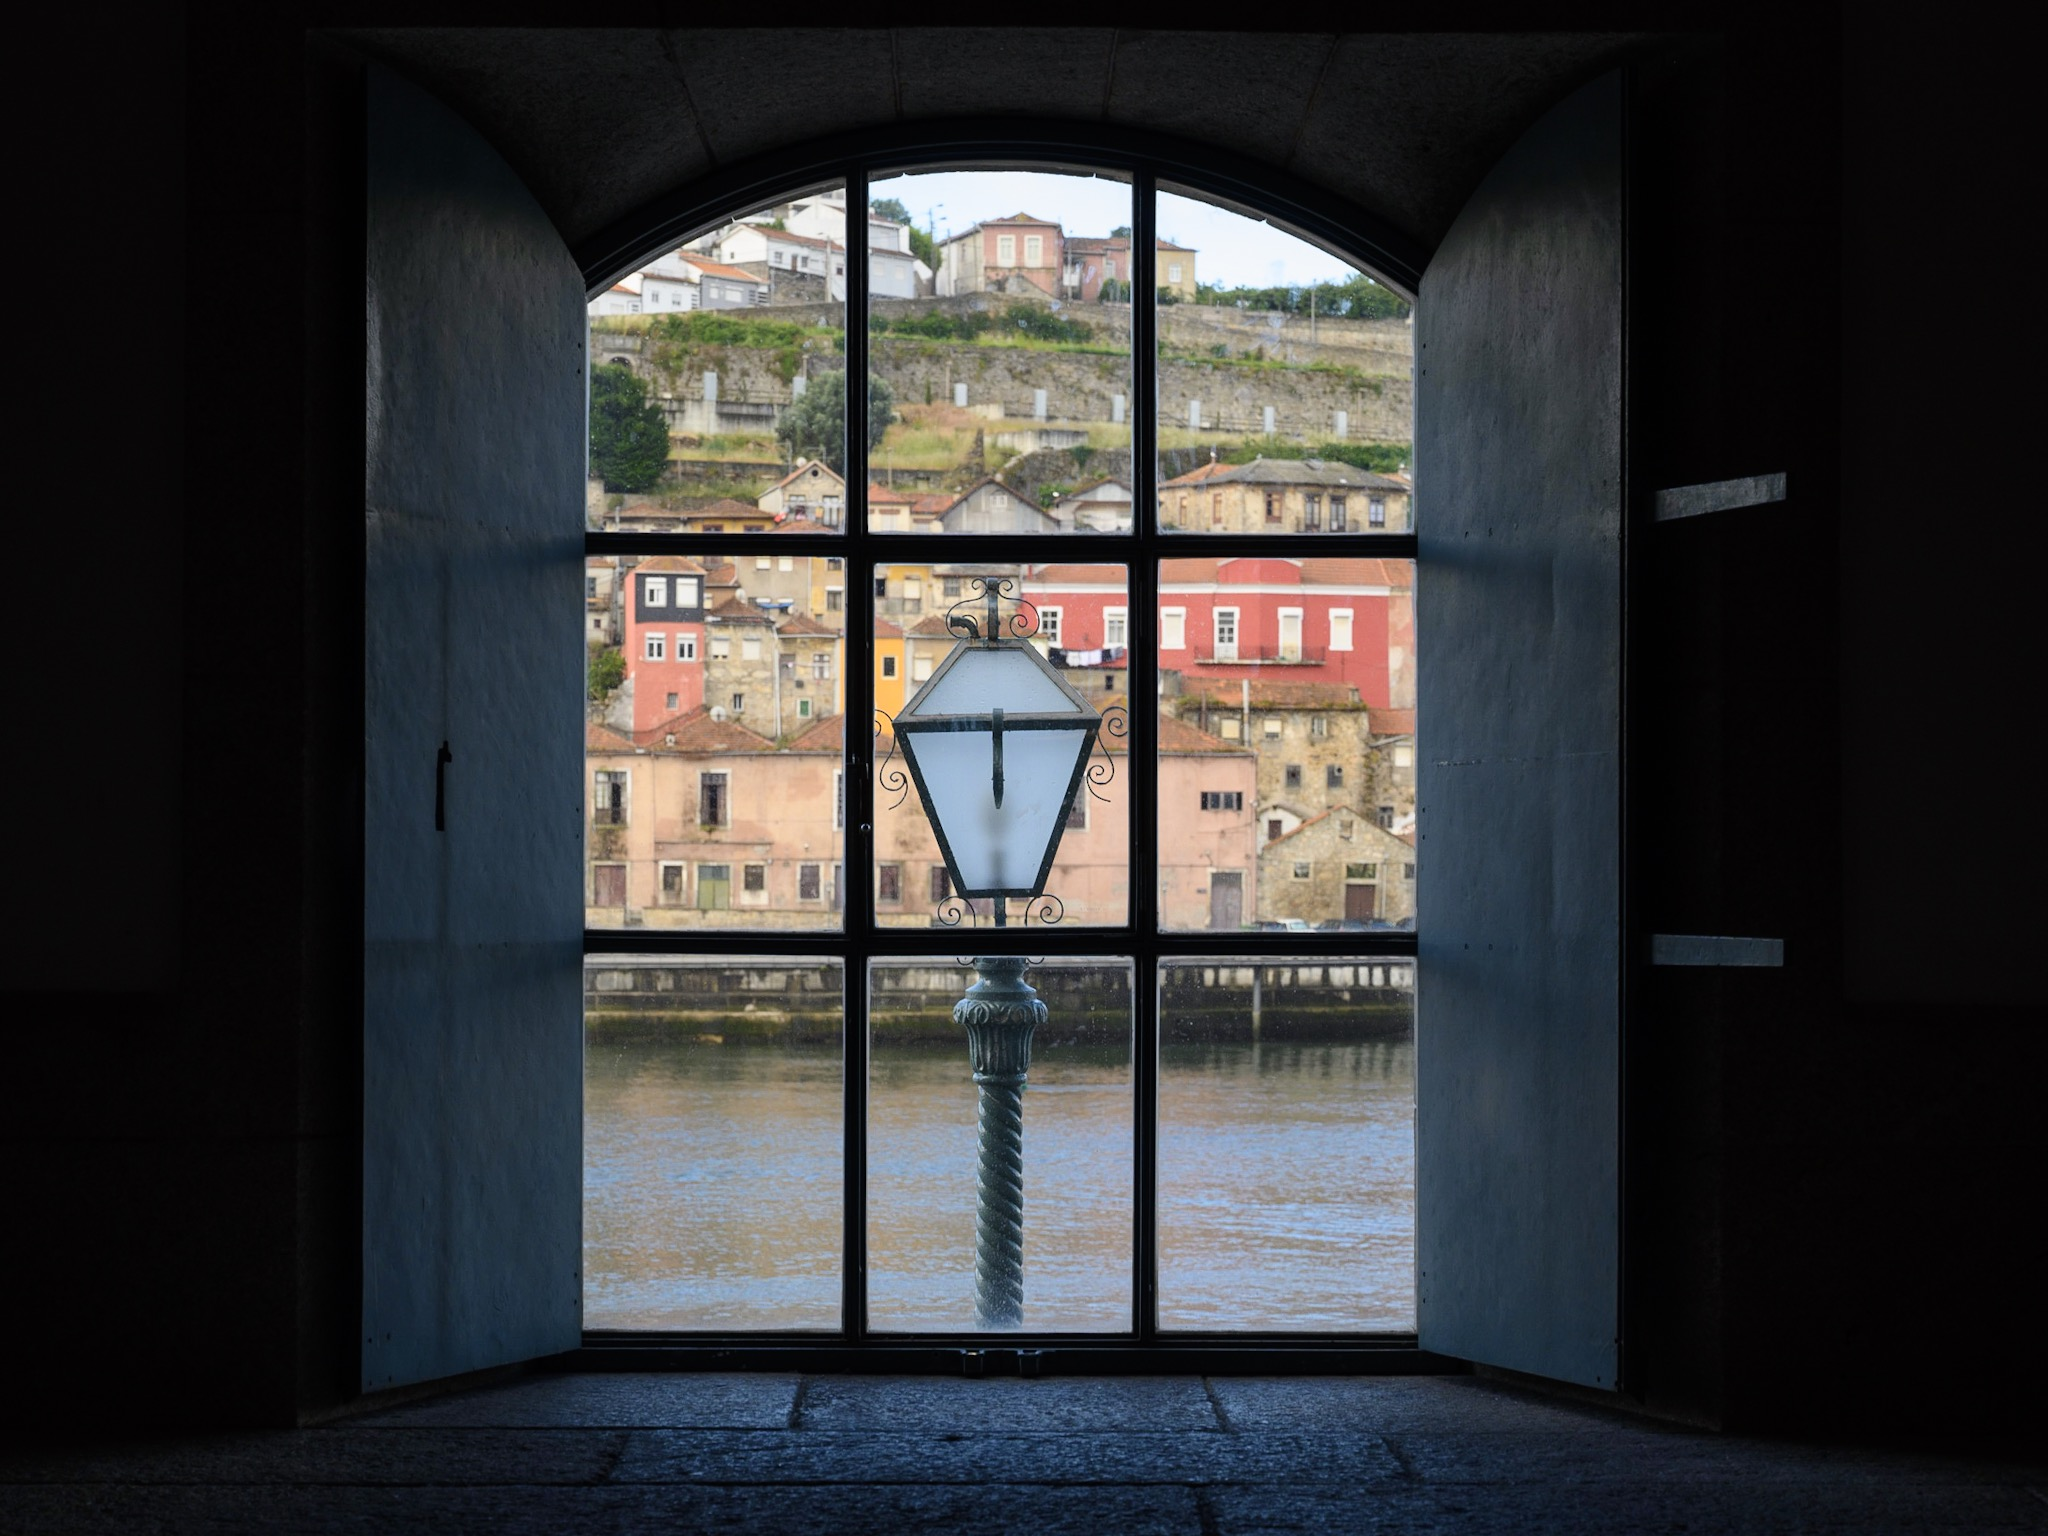 Look through a window across a river in Porto, Portugal